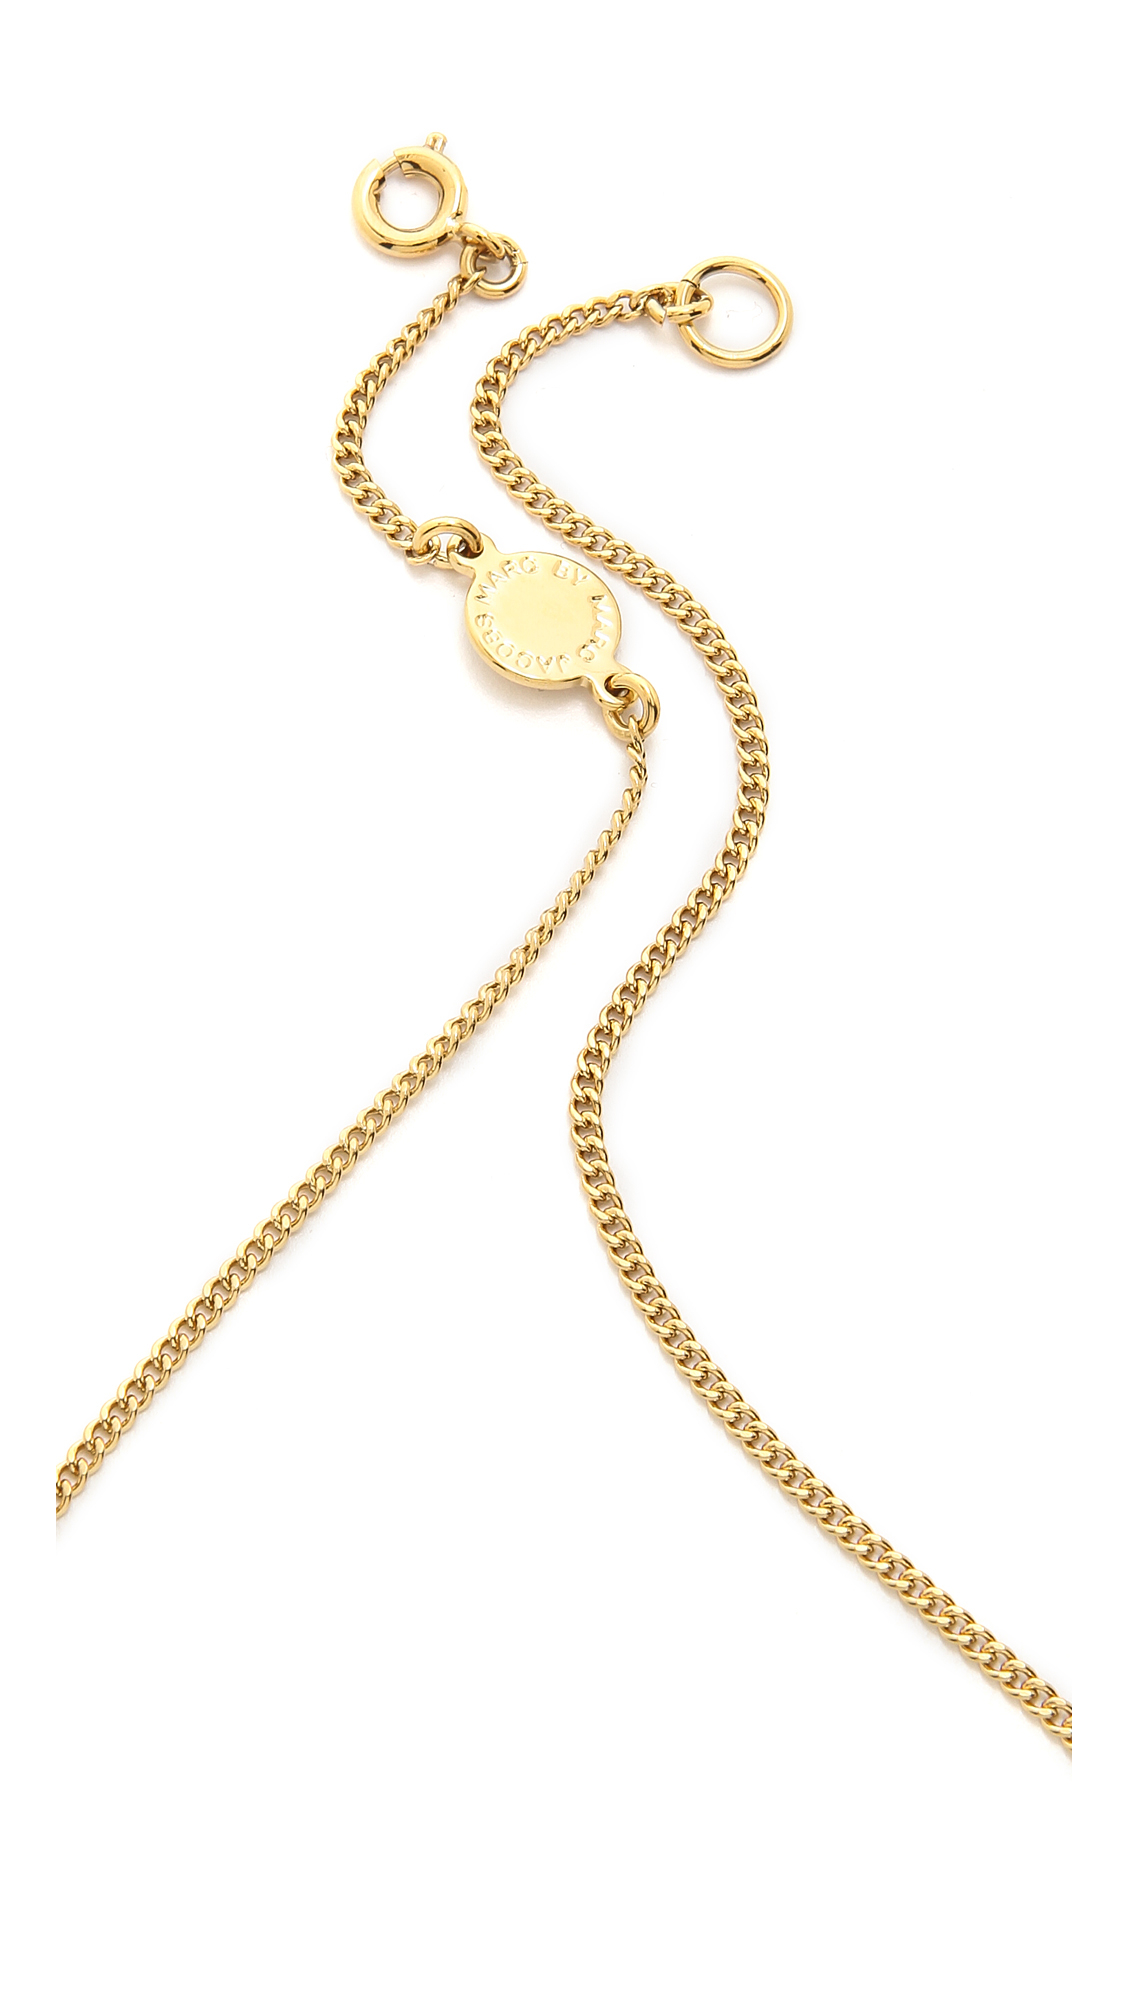 Marc By Marc Jacobs Twisted Nameplate Necklace - Oro in Metallic